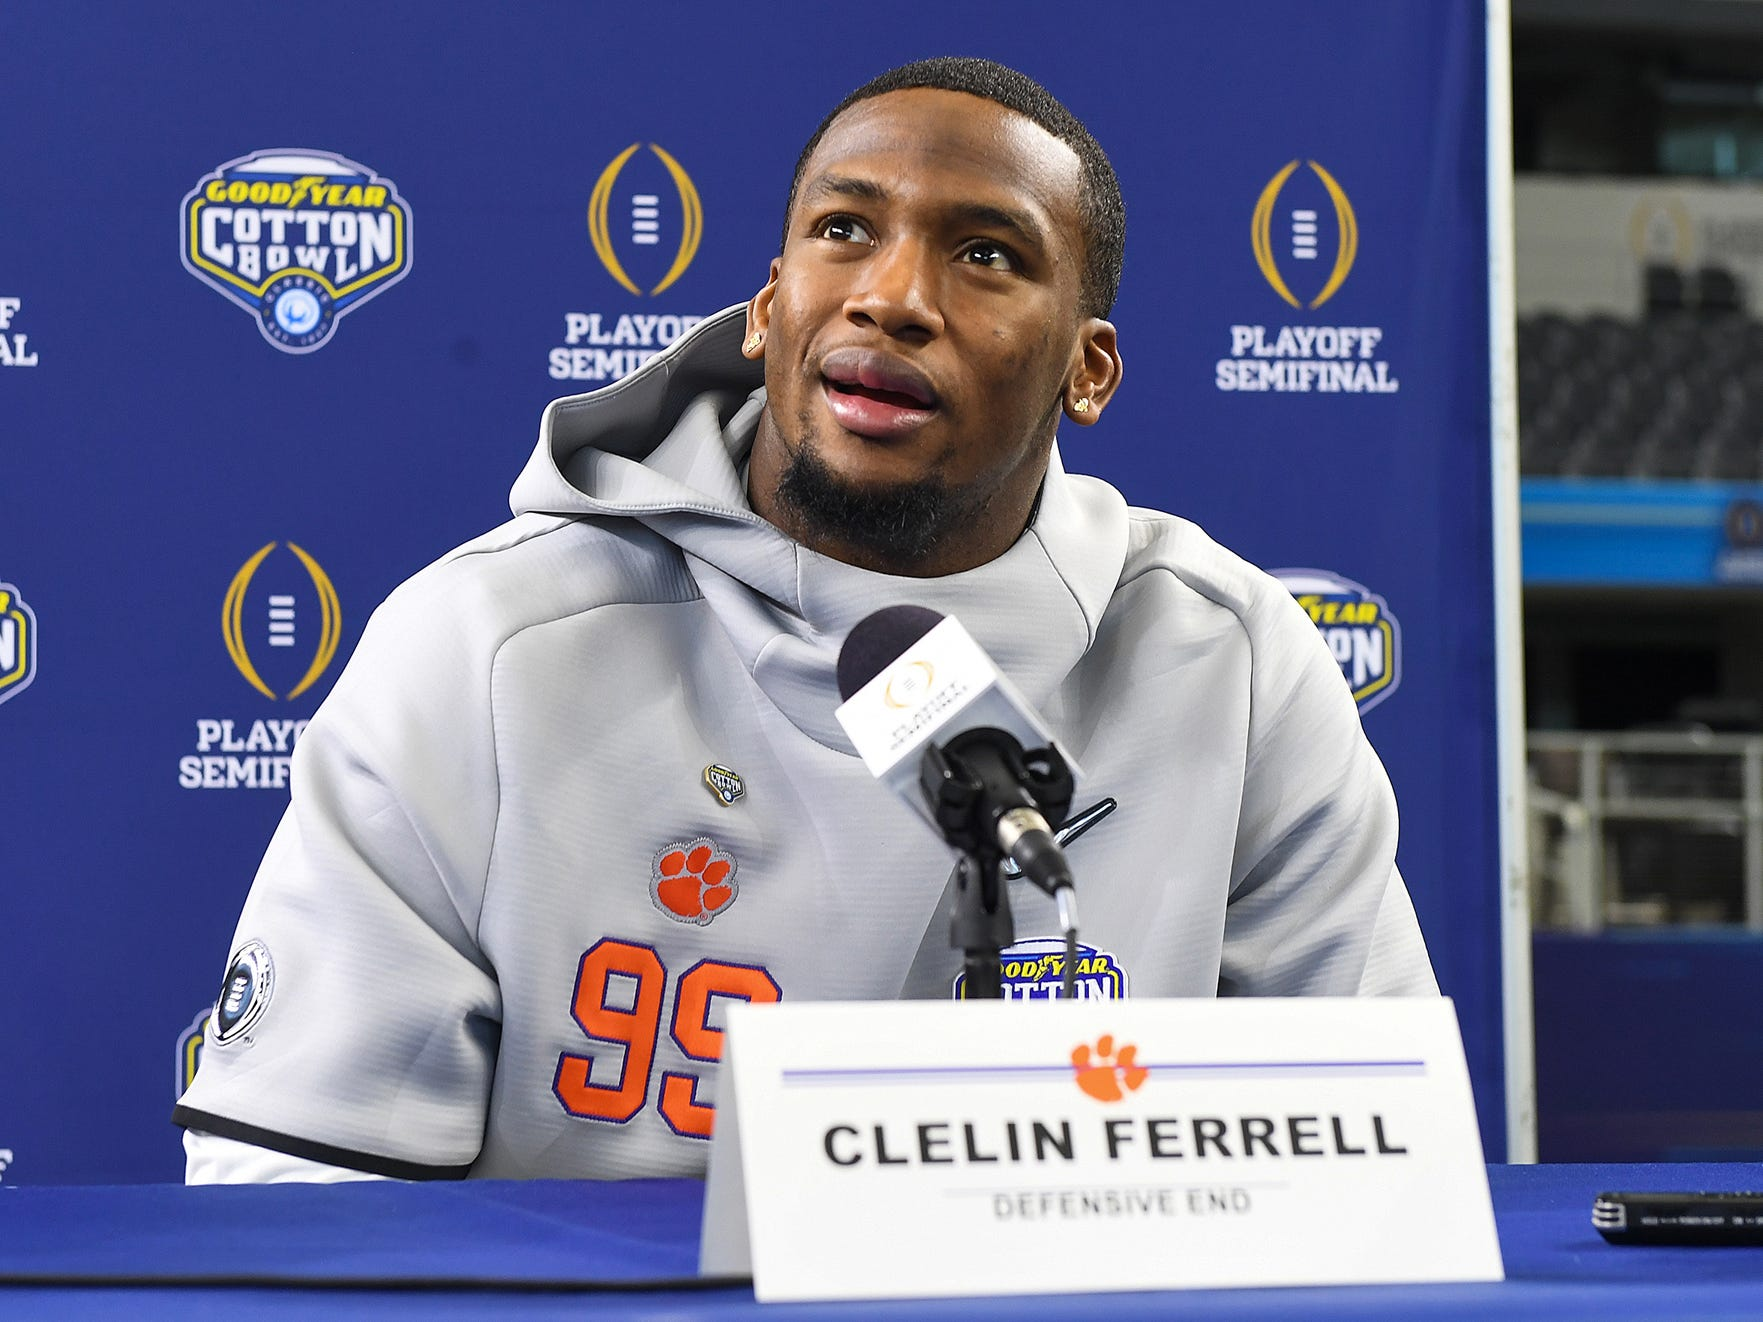 Clemson defensive lineman Clelin Ferrell (99) answers questions during the Tigers Cotton Bowl media day at AT&T Stadium in Arlington, TX Thursday, December 27, 2018.